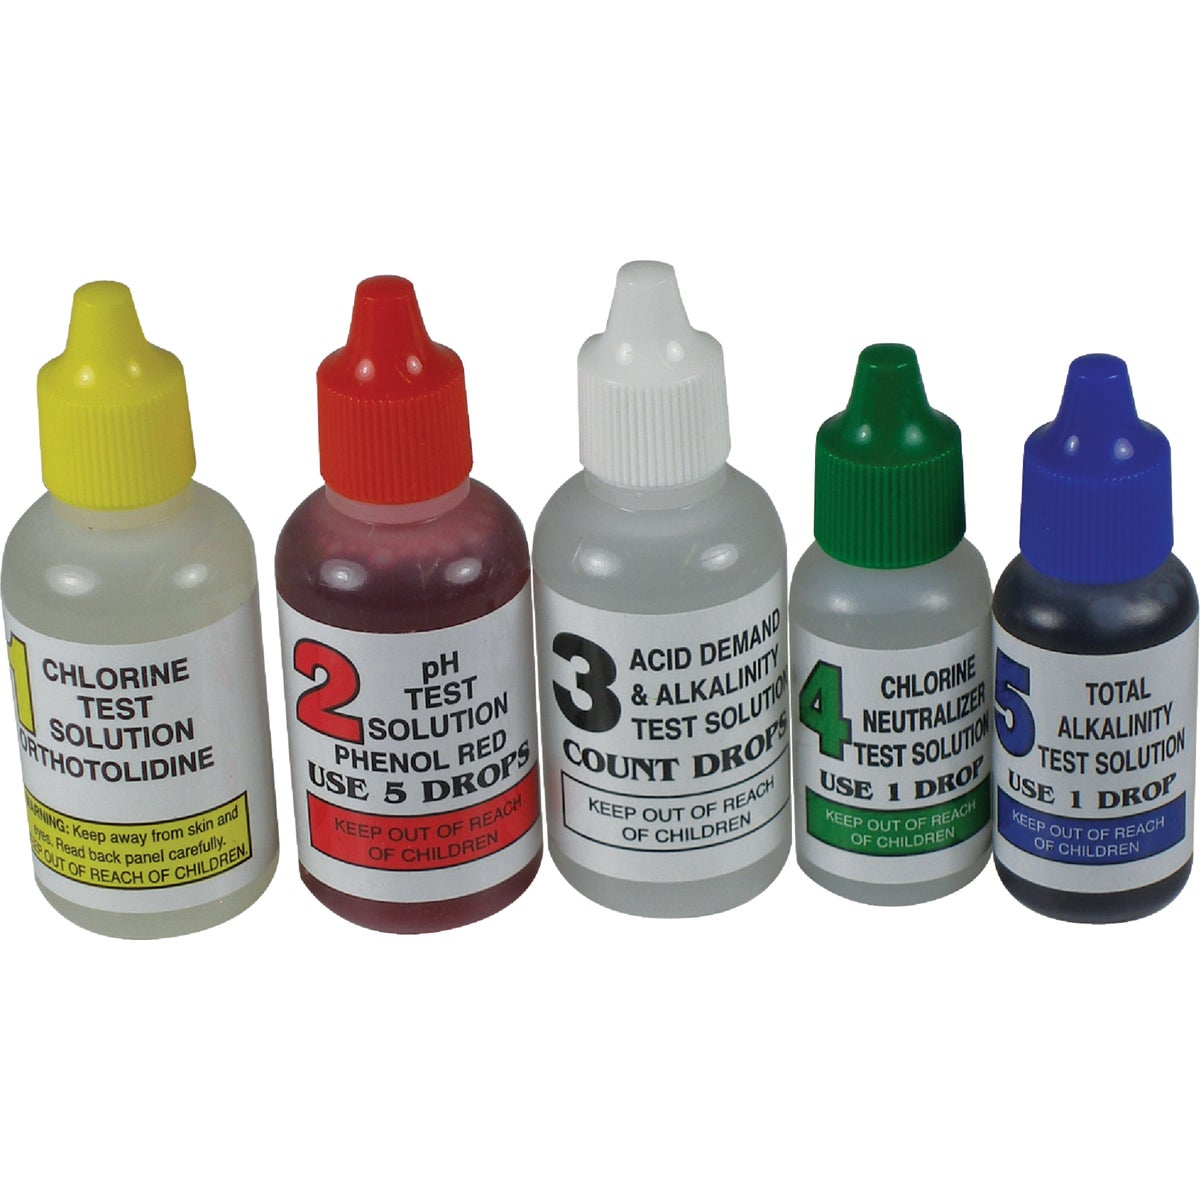 5-WAY REFILL TEST KIT